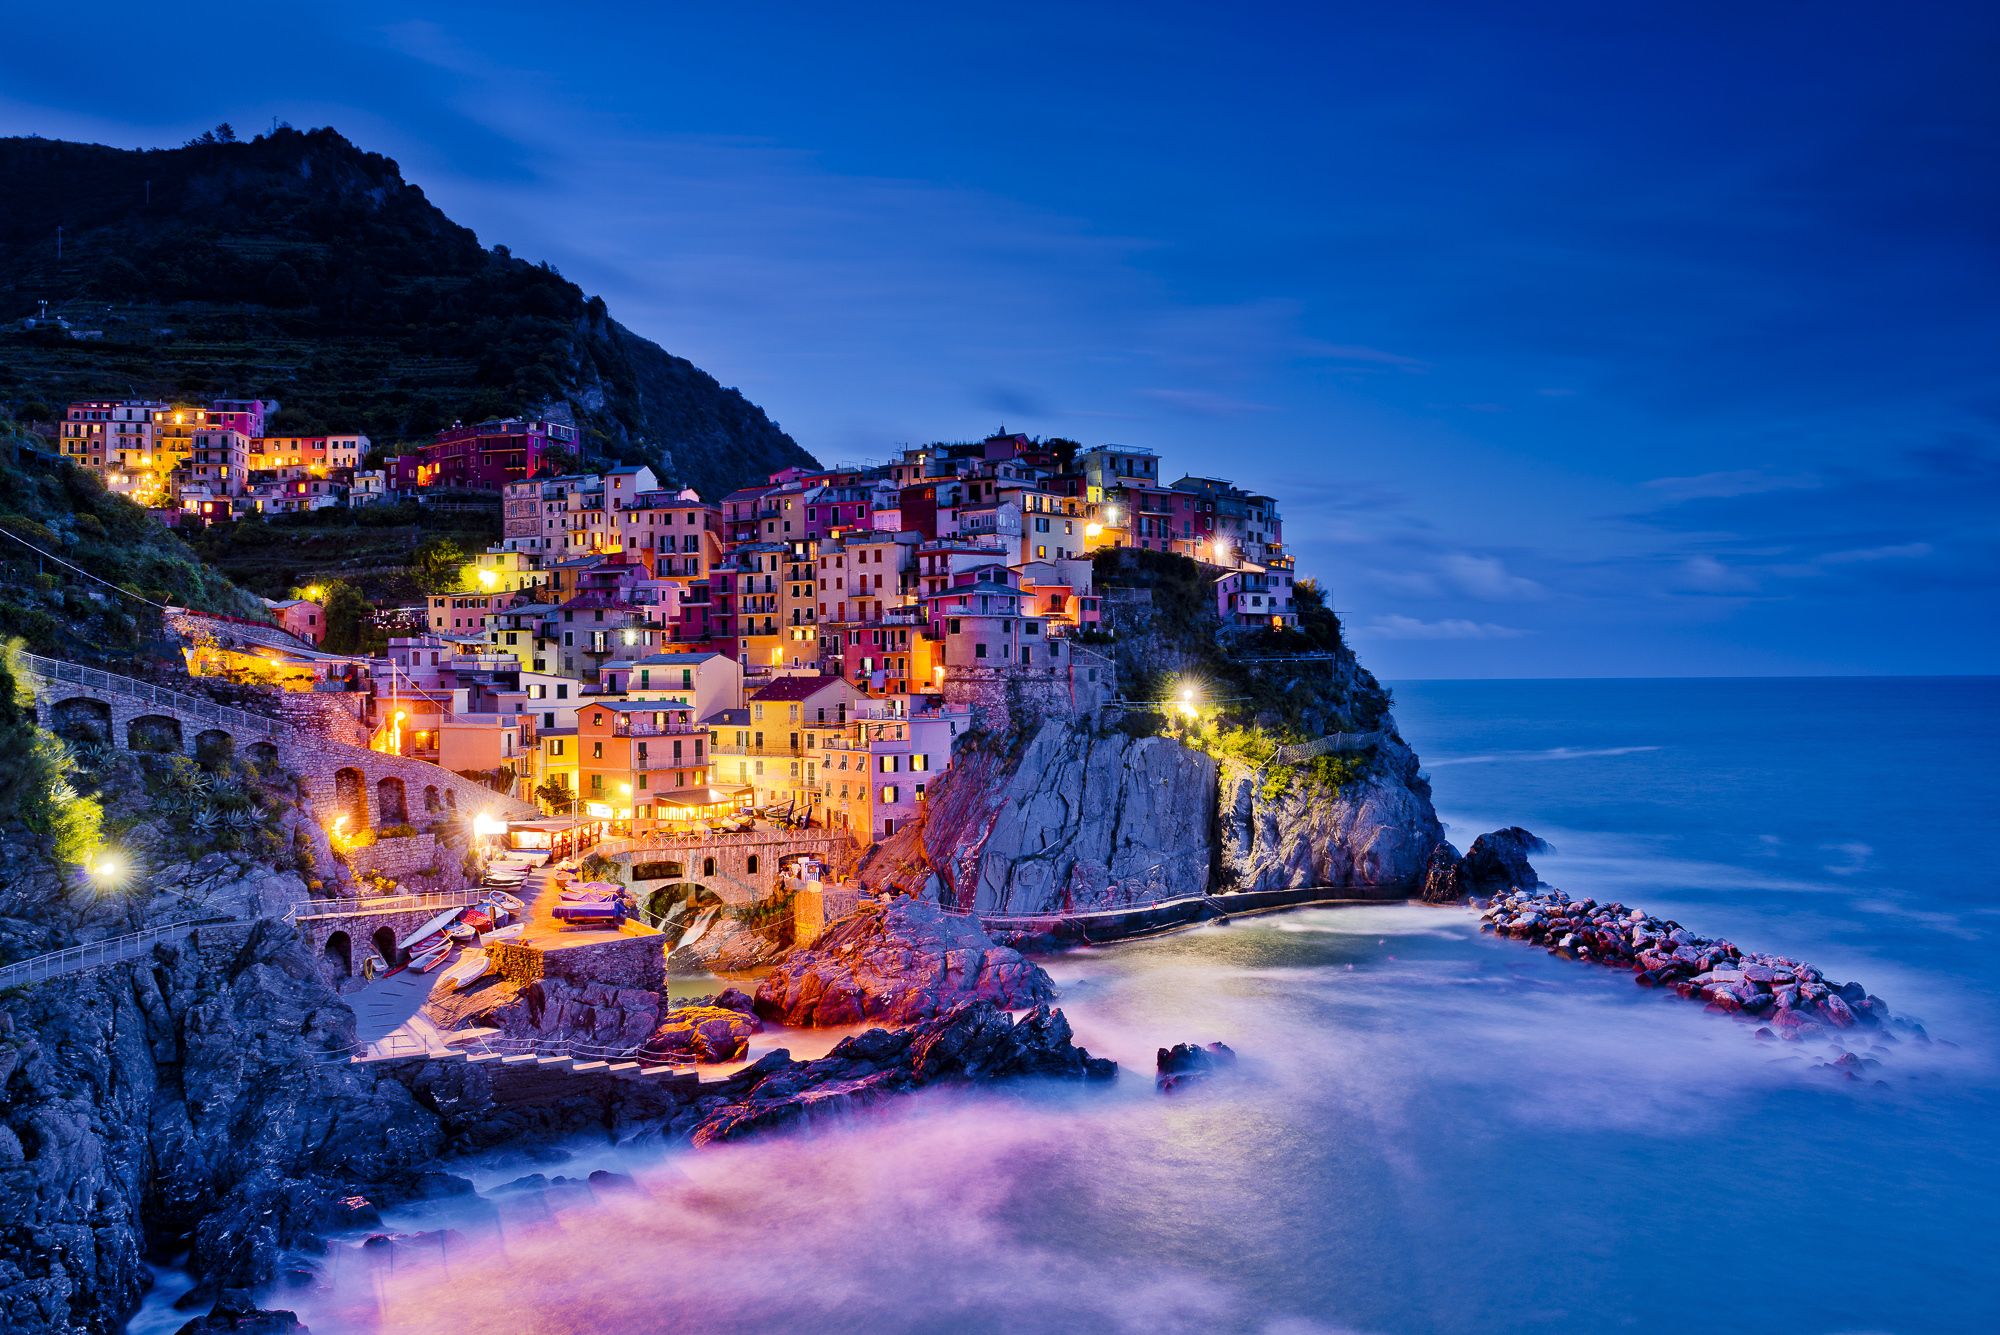 Manarola at Night, Cinque Terre, Liguria, Italy